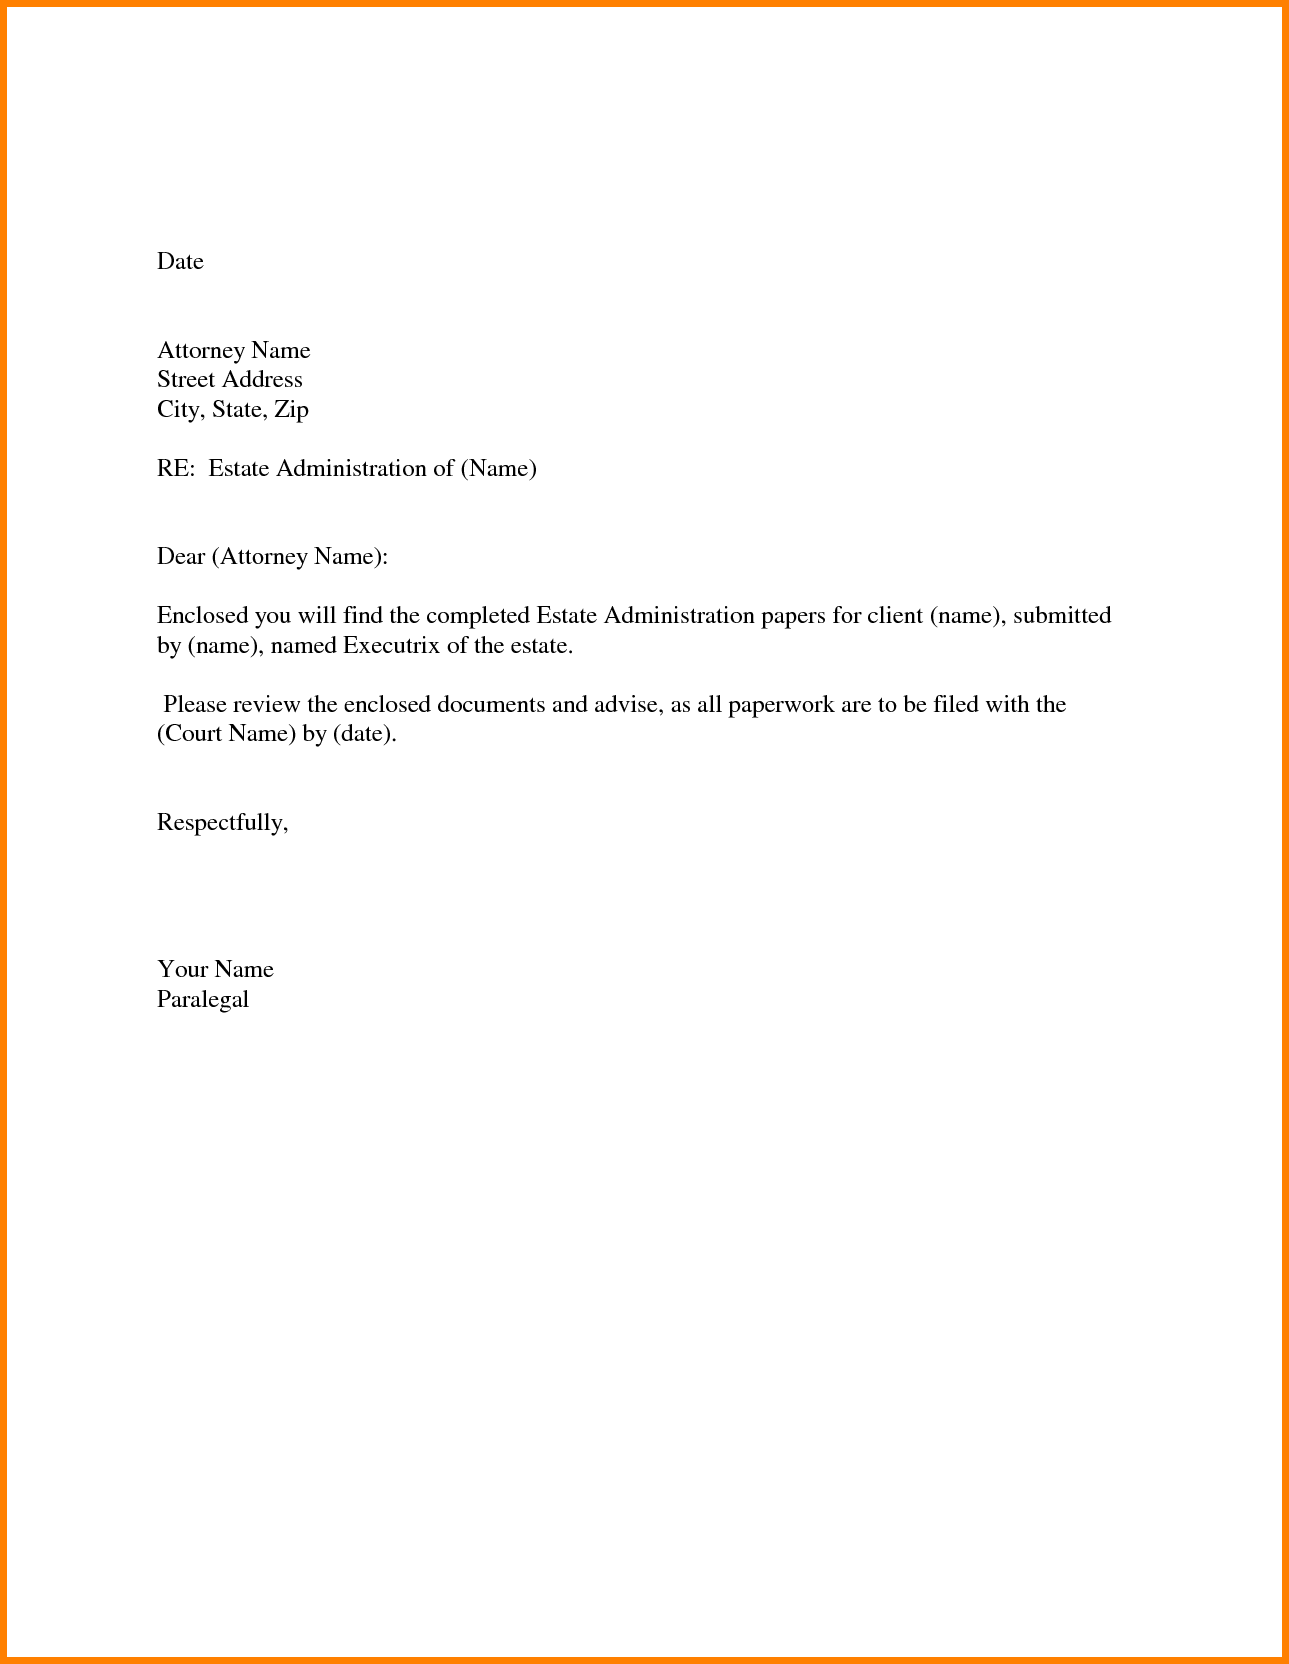 letter template enclosed documents  Pin by News PB on Resume Templates | Job cover letter ...